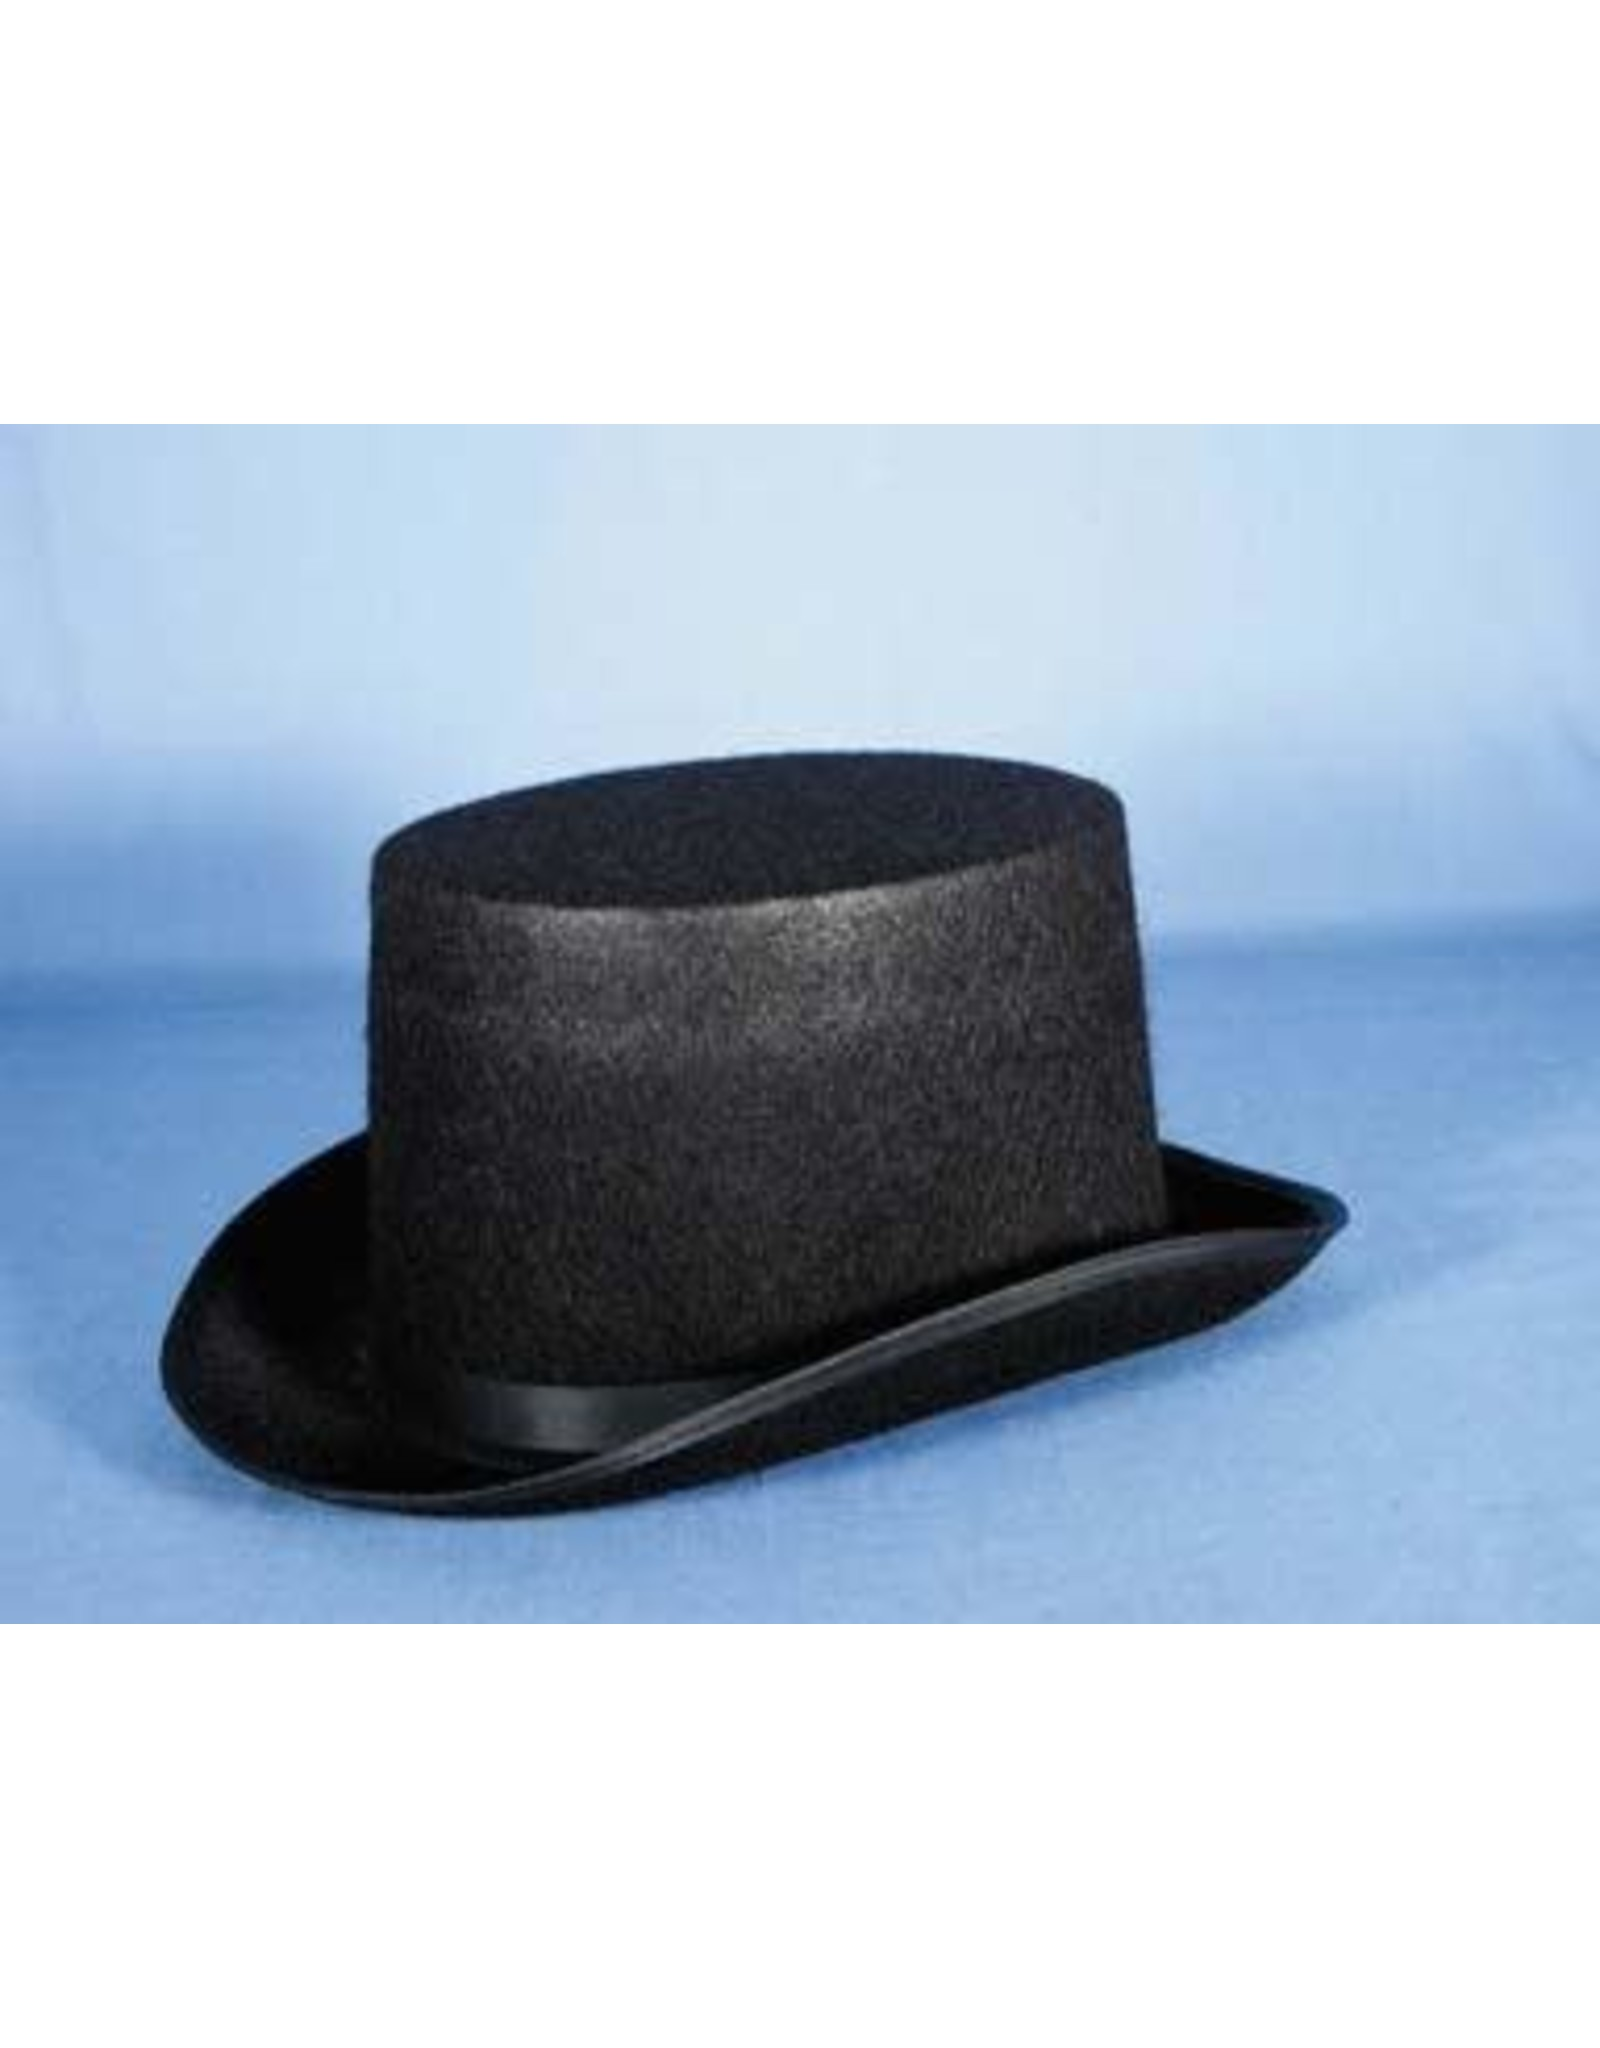 HM Smallwares Black Top Hat